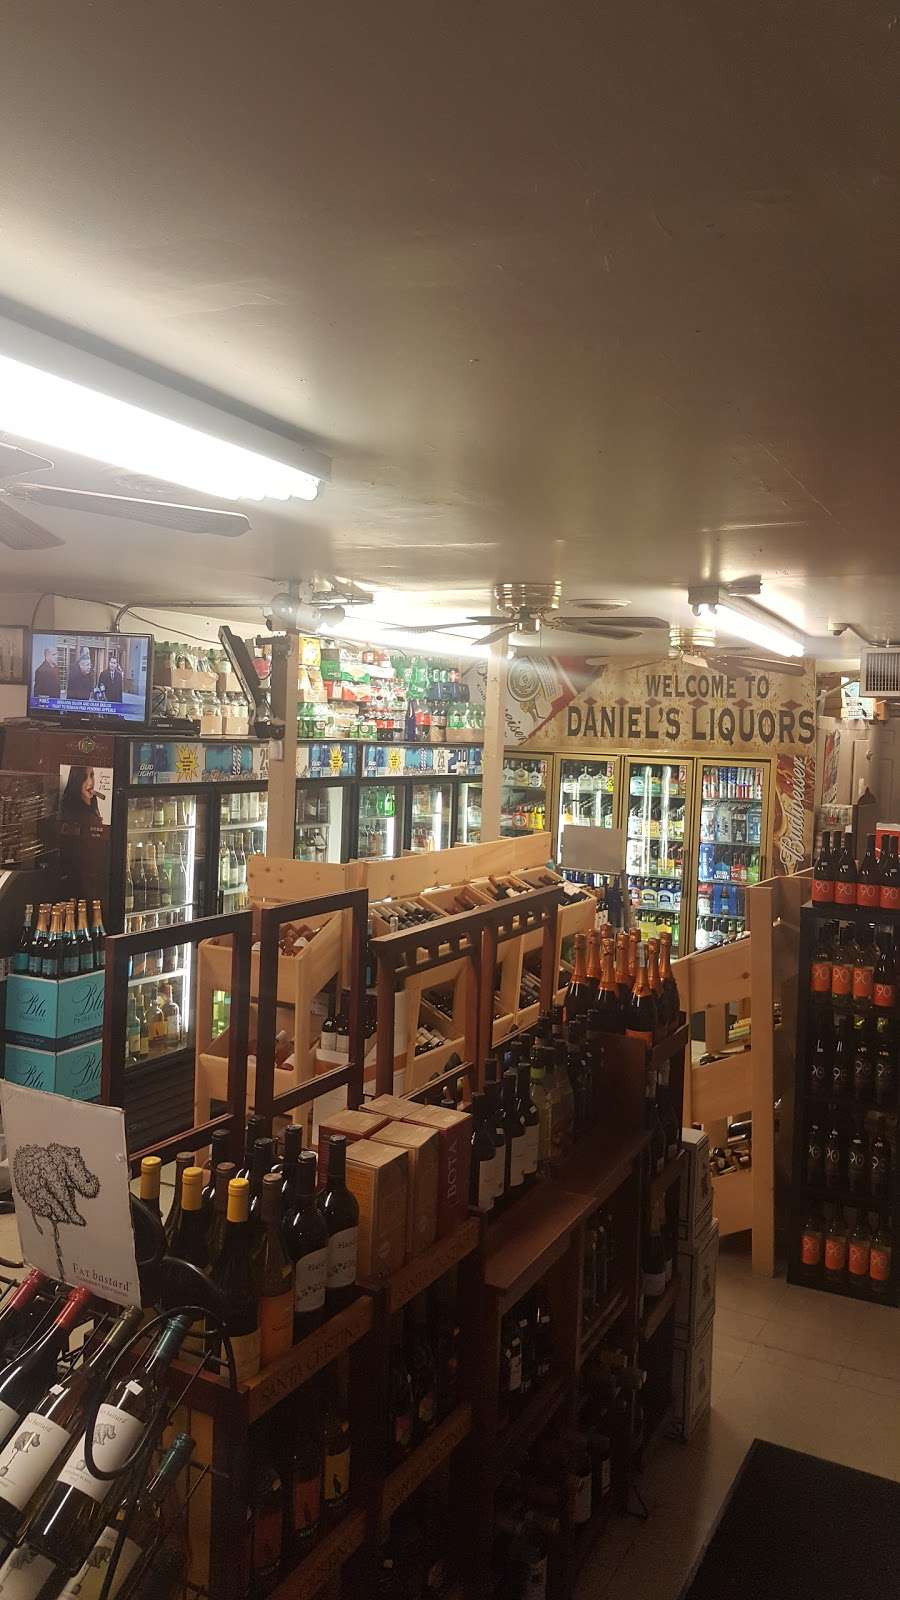 Daniel Liquors & Wines Inc - store  | Photo 10 of 10 | Address: 87 Garden St, Hoboken, NJ 07030, USA | Phone: (201) 656-9997